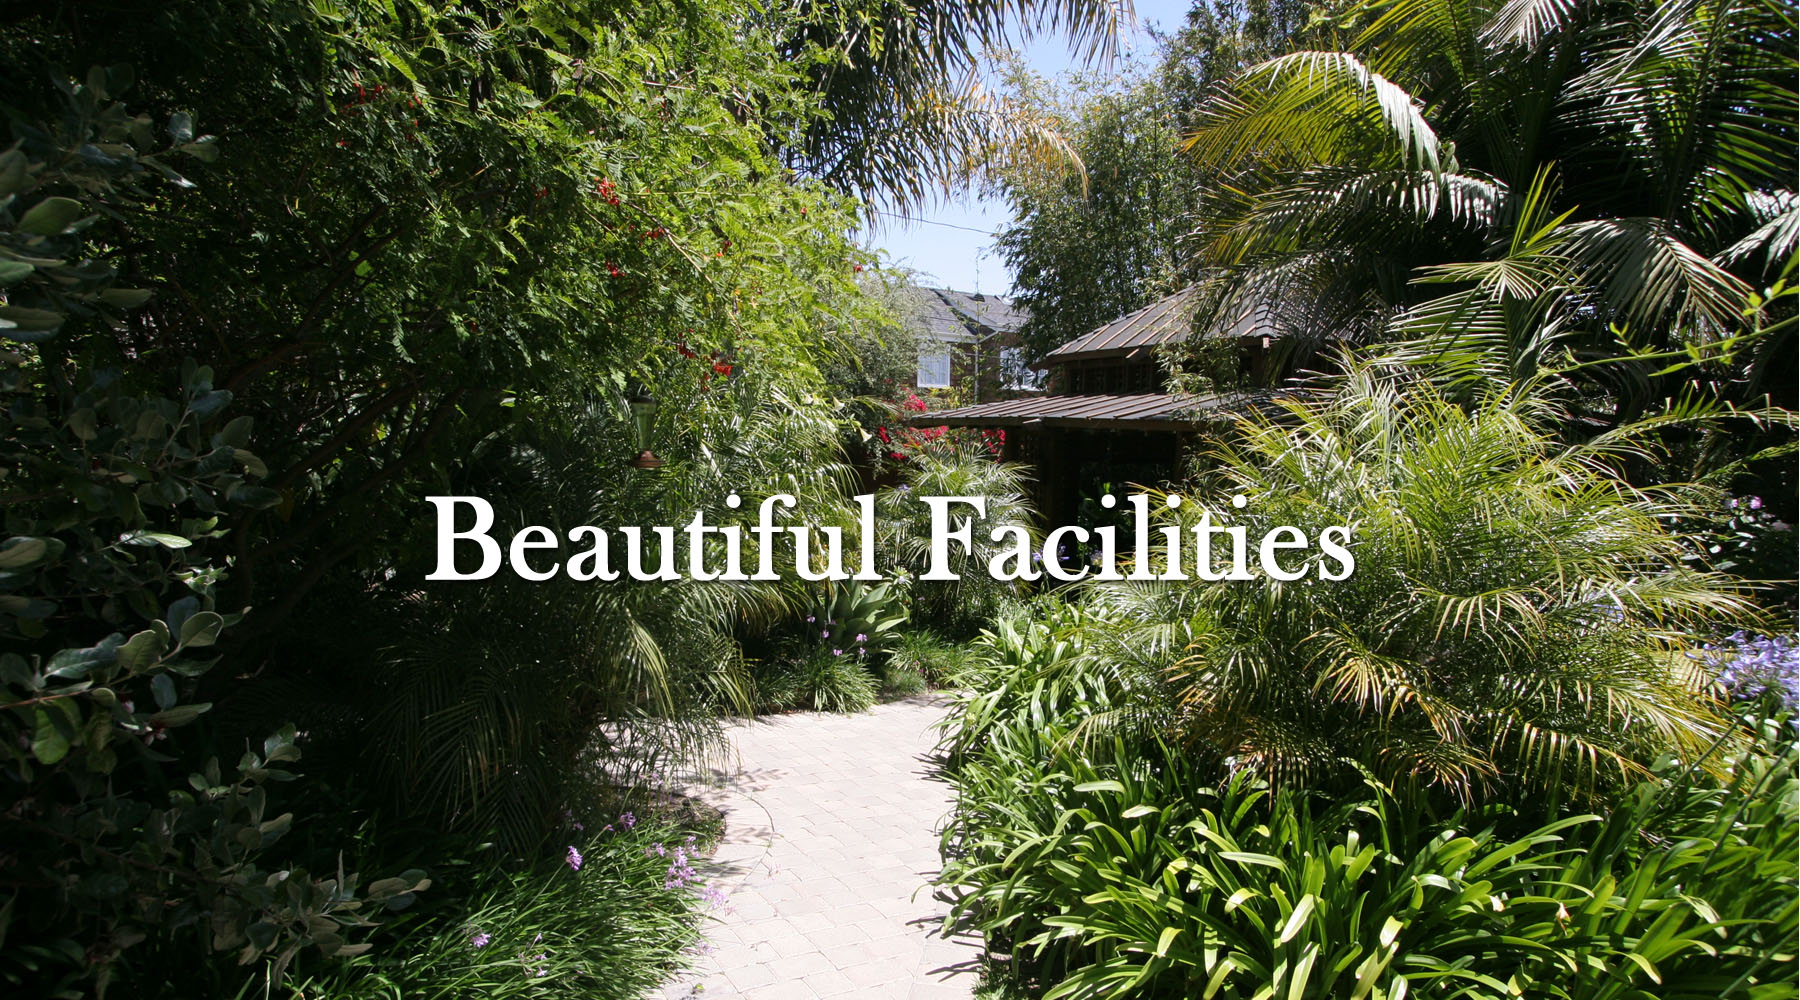 Assisted Living Santa Barbara facilities